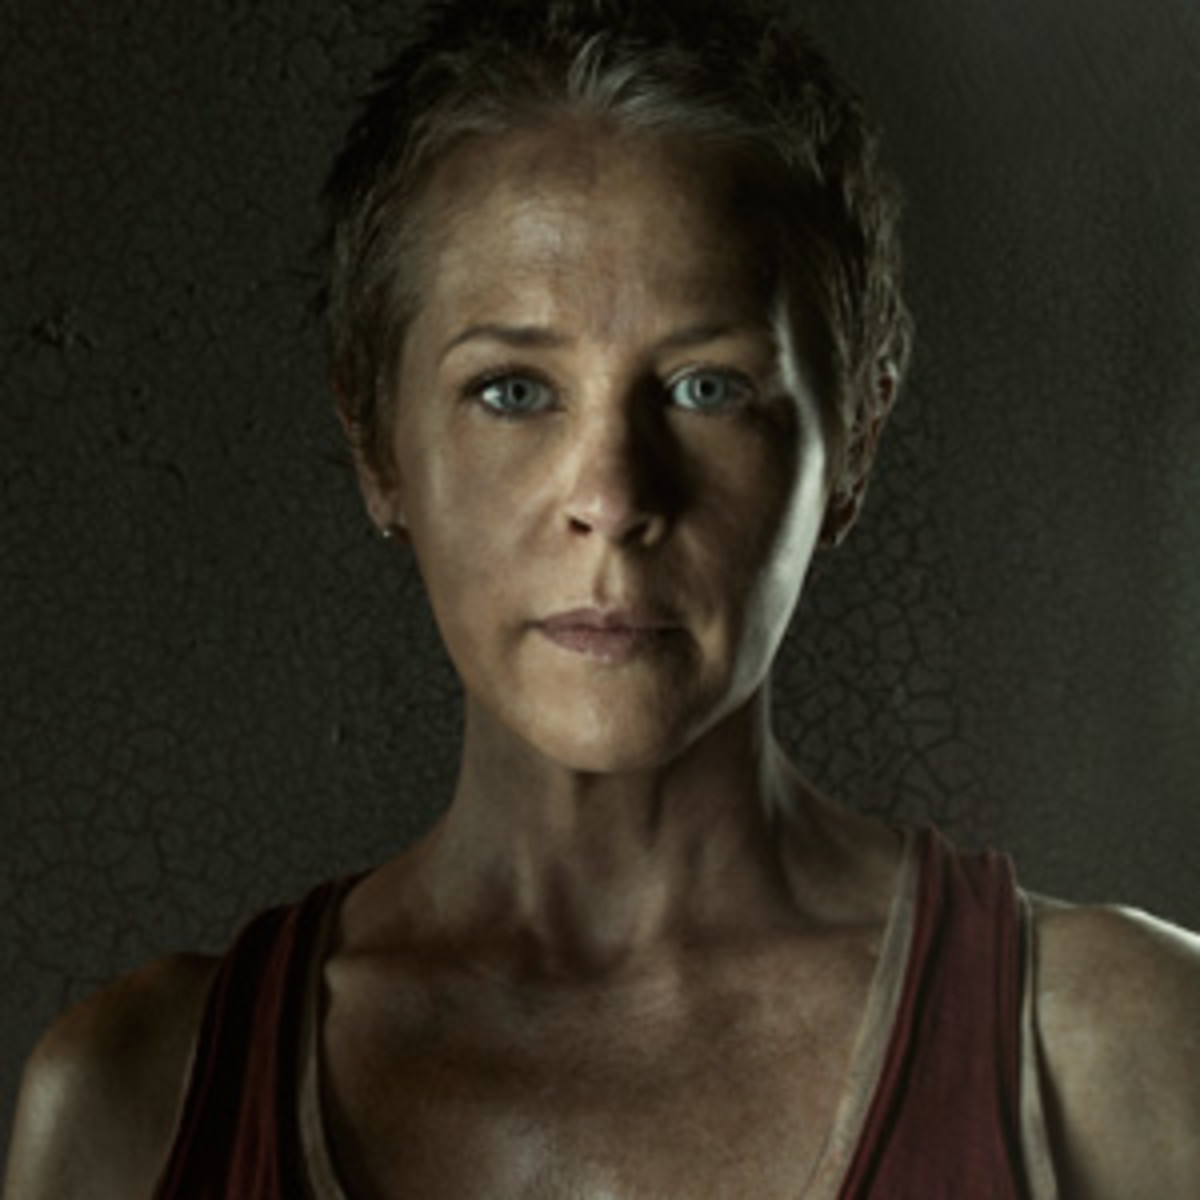 Carol Peletier from The Walking Dead